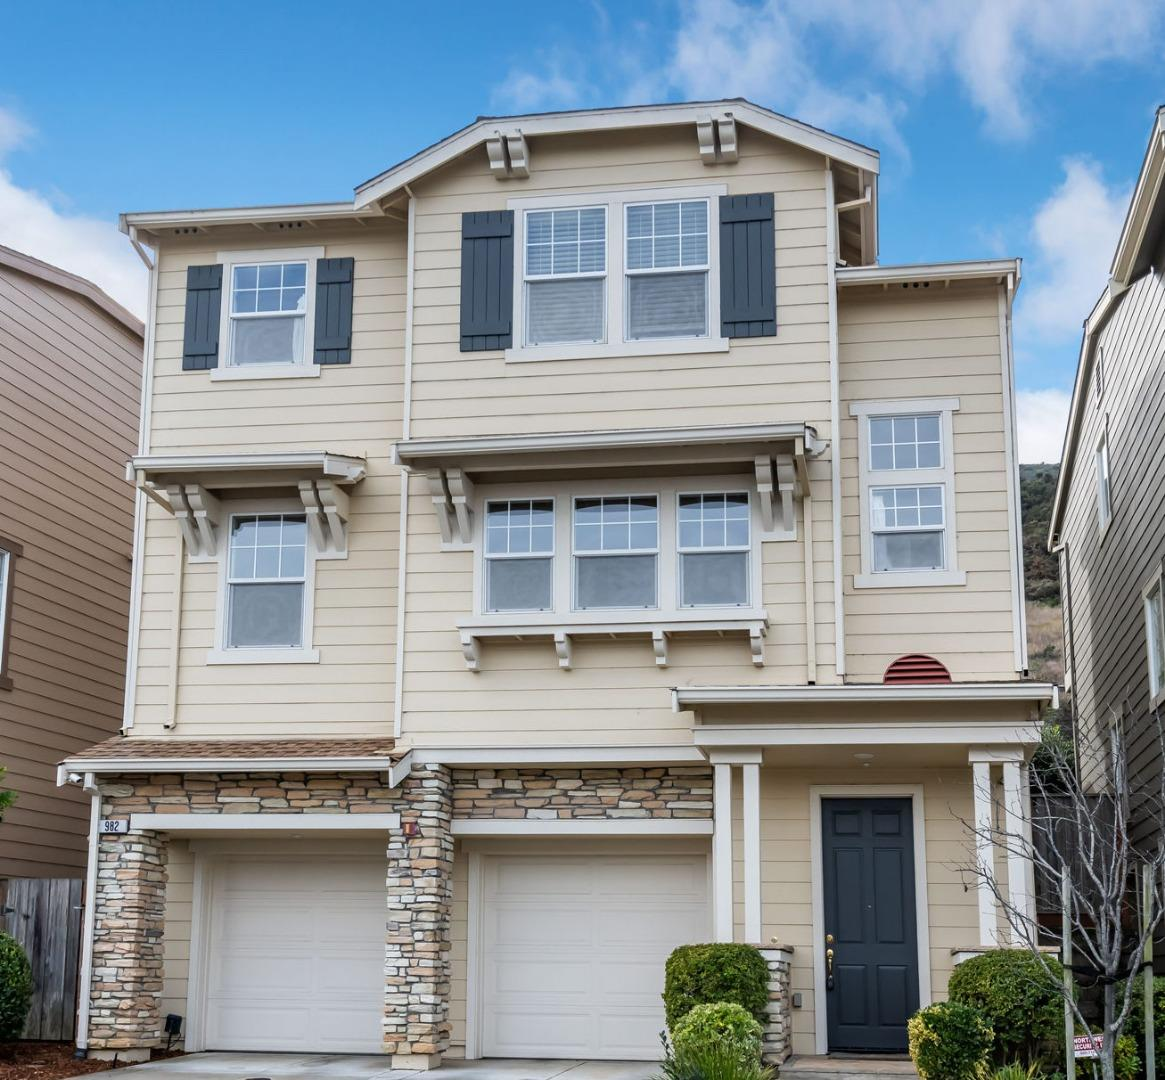 Image for 982 Farrier Place, <br>Daly City 94014